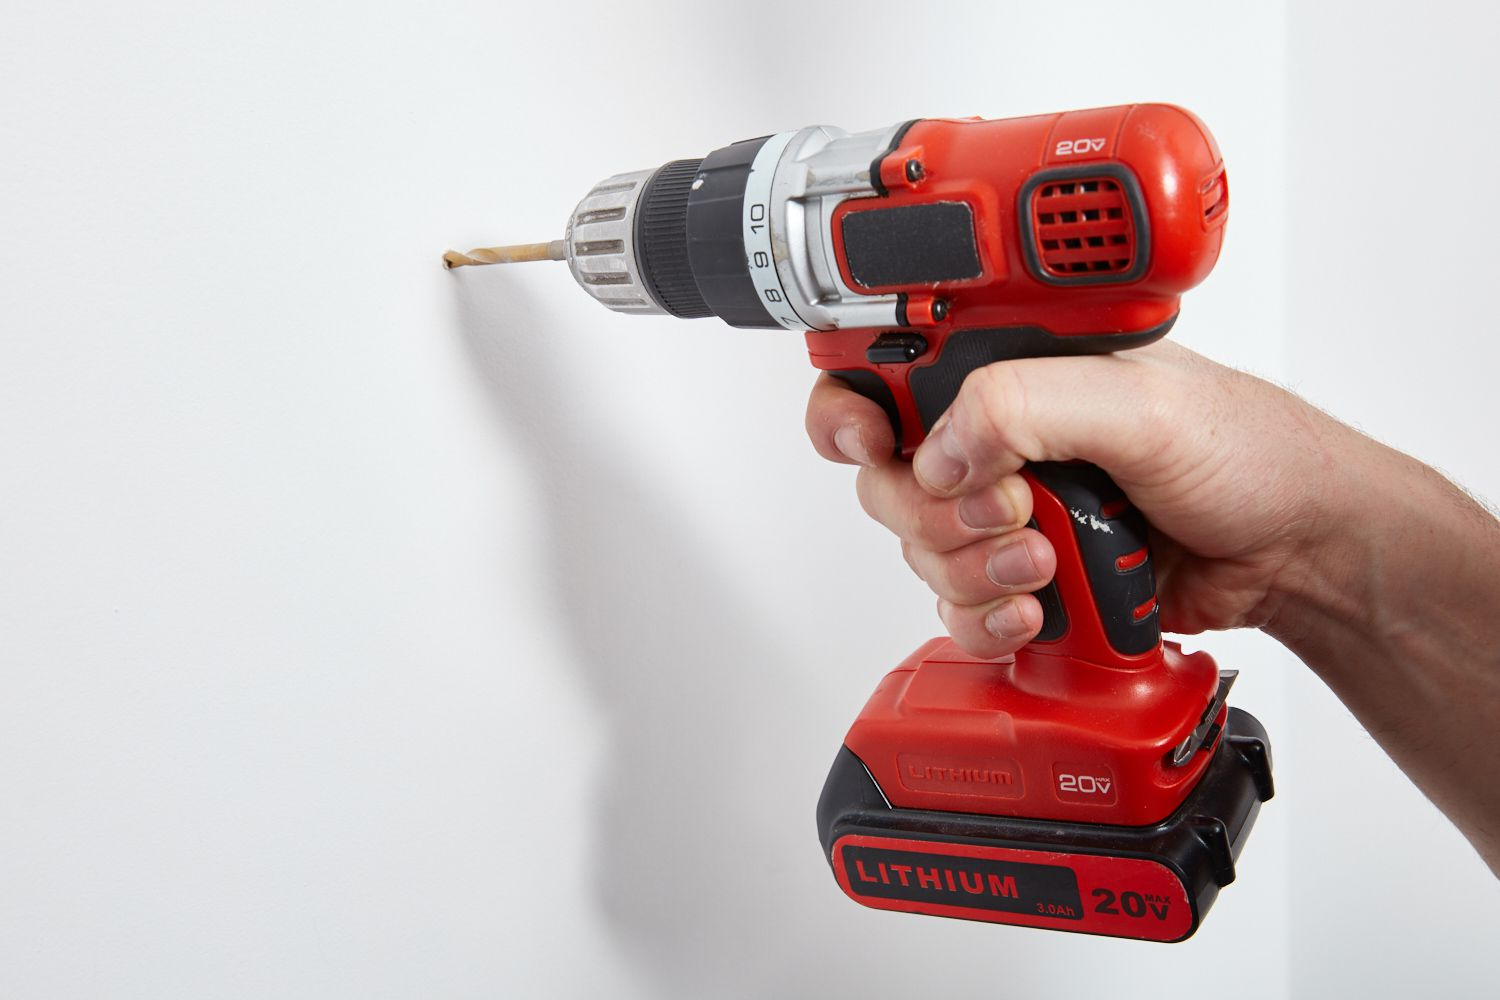 Drill wall hole with power drill